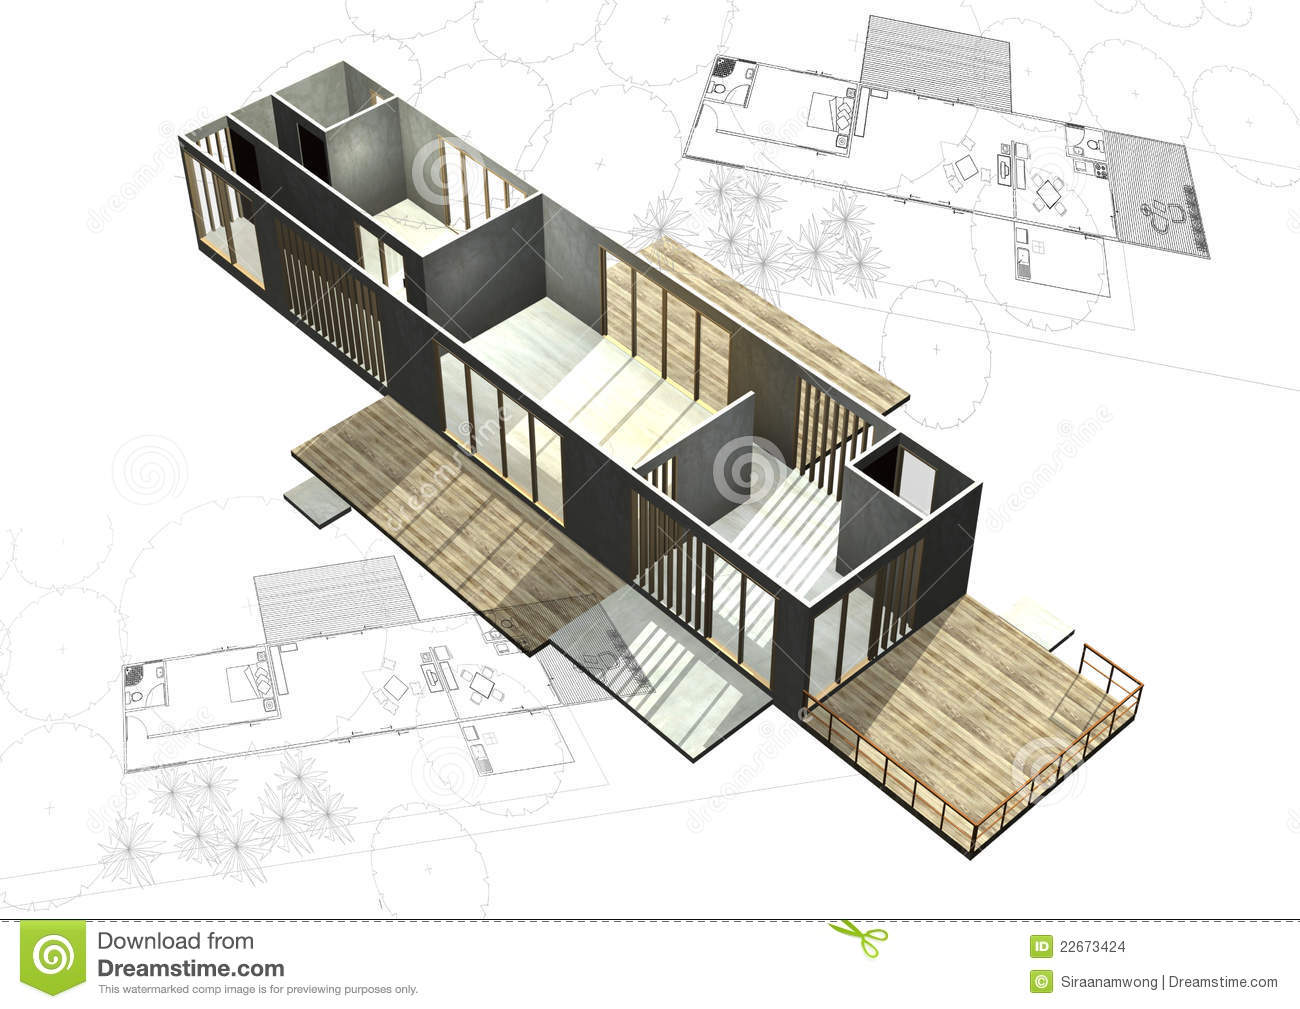 Housing architecture plans with 3d building stock for Architecture design house plans 3d